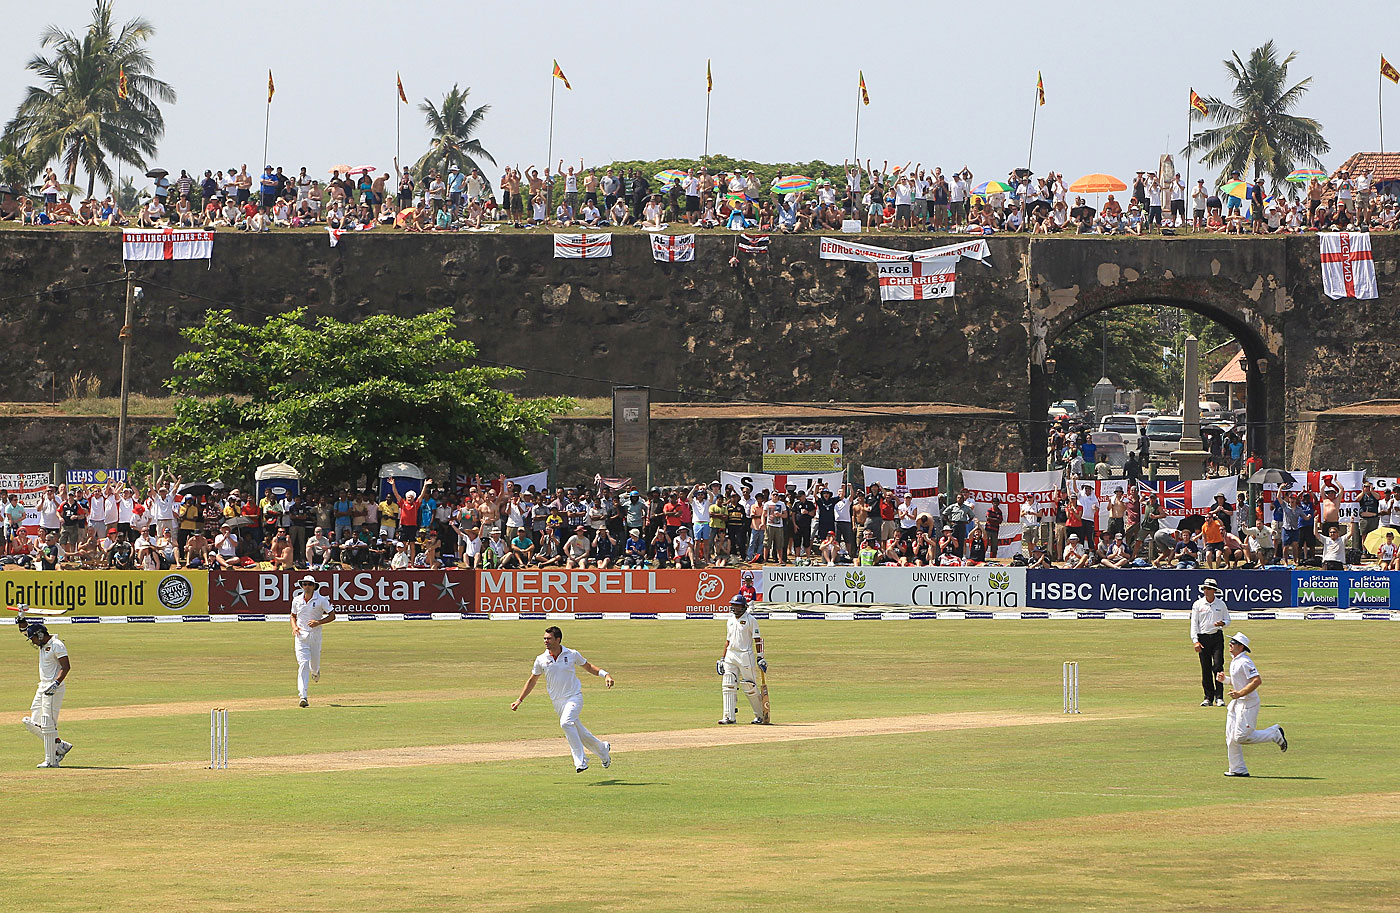 On his five-for in Galle, 2012: